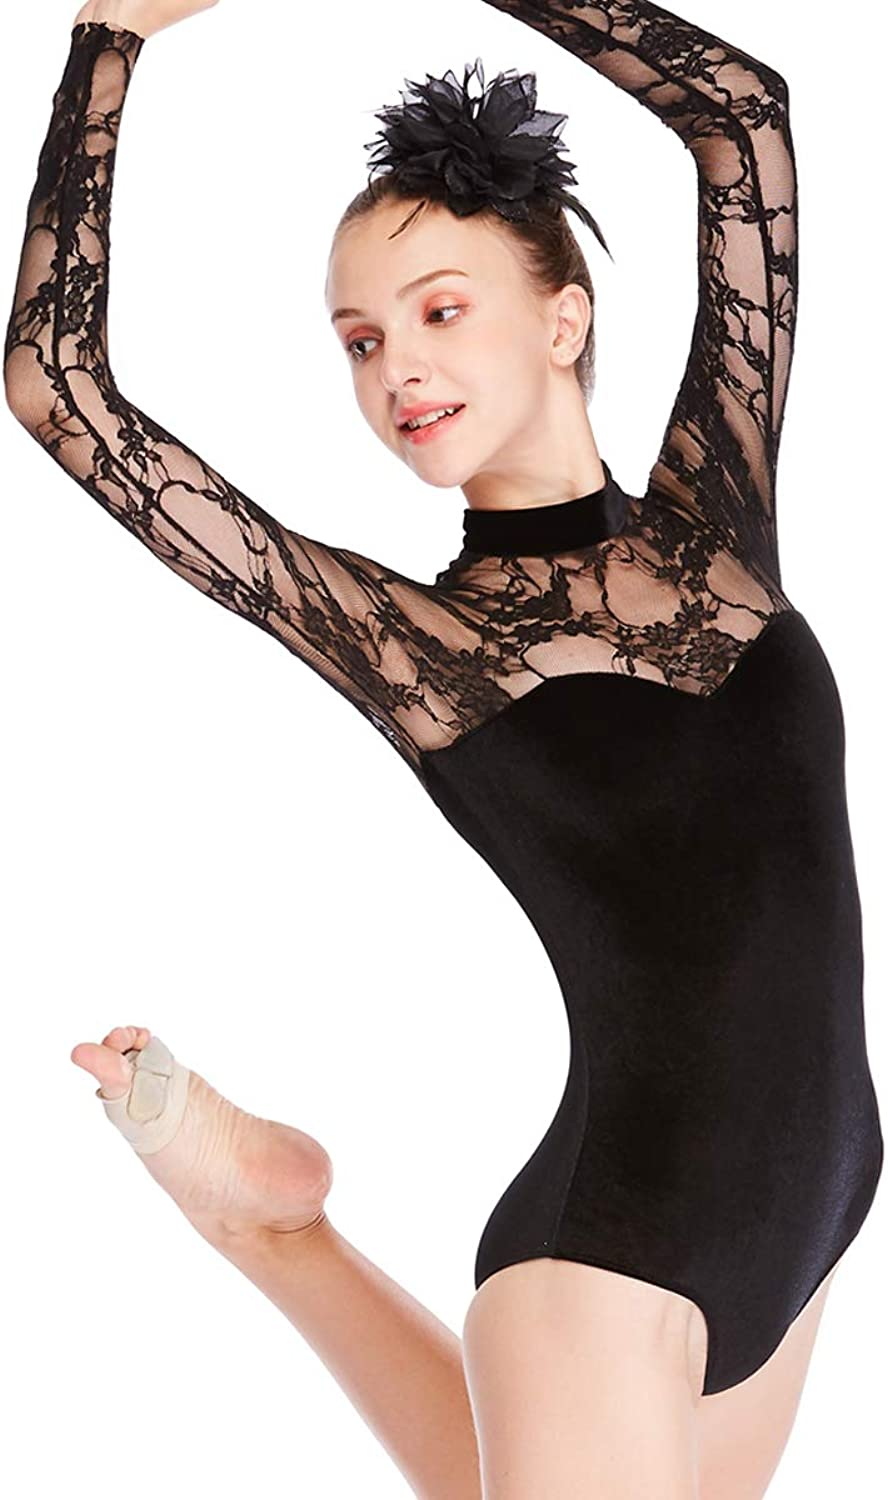 MiDee Dance Leotard Performance Lace Velvet Long Sleeves